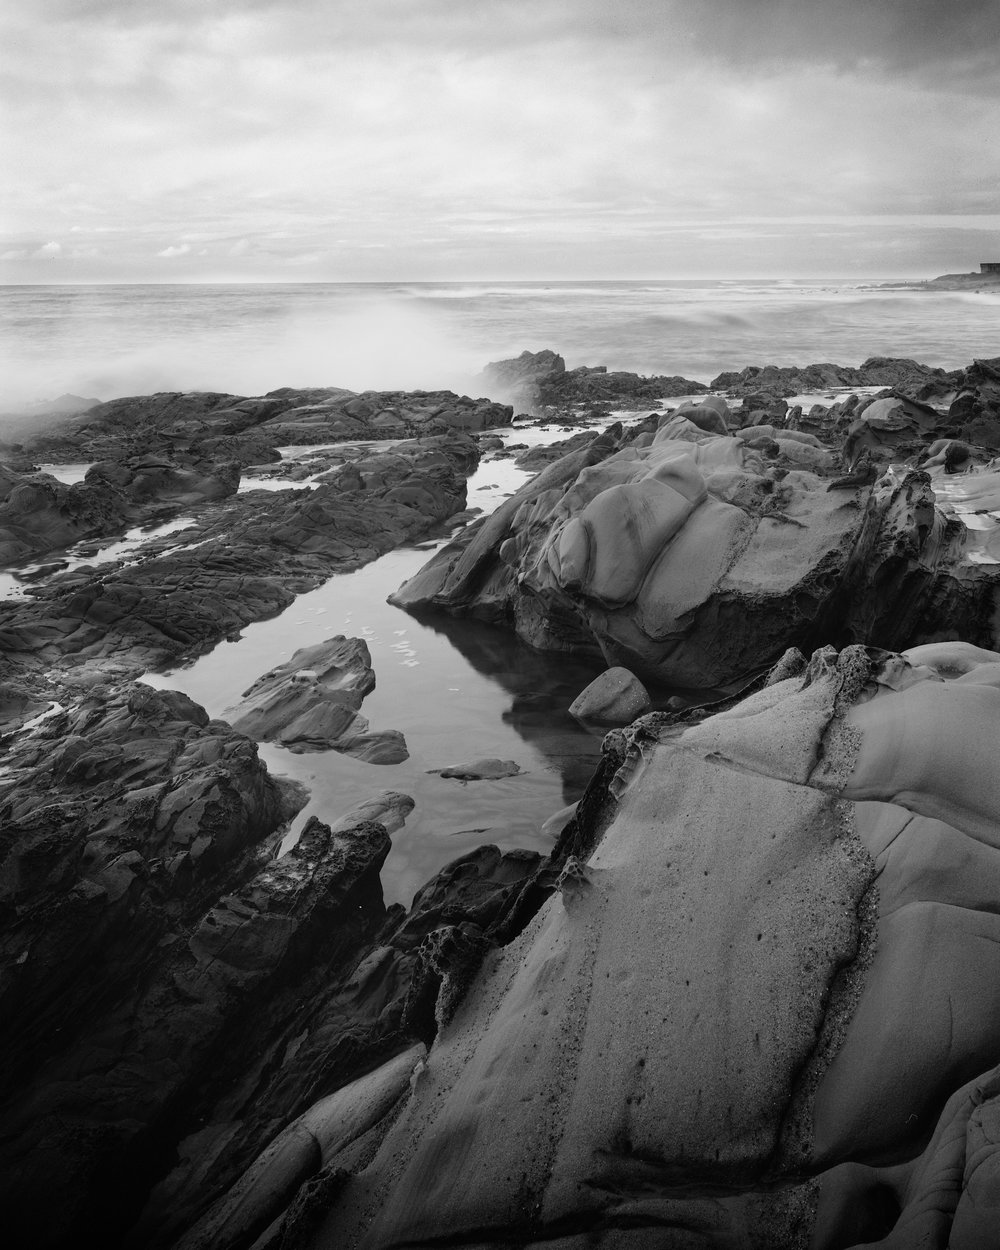 Surf breaking over tidepools. Nagaoka 4x5, Fujinon 125mm f/5.6, Ilford Delta 100